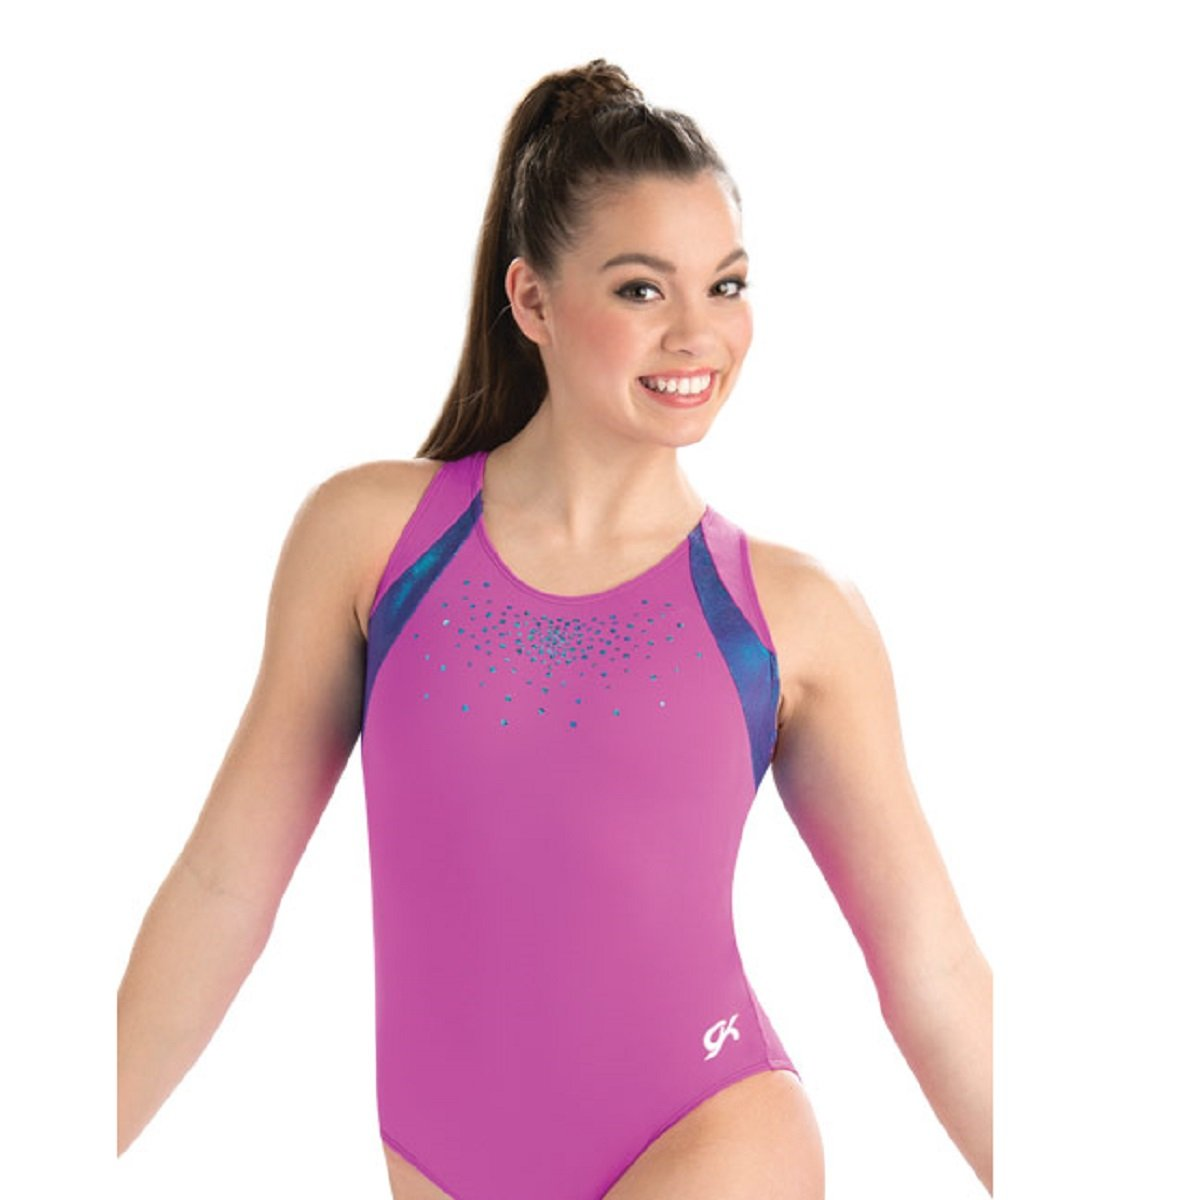 GK Elite Gypsy Laser Cut Leotard Adult Small AS by GK Elite